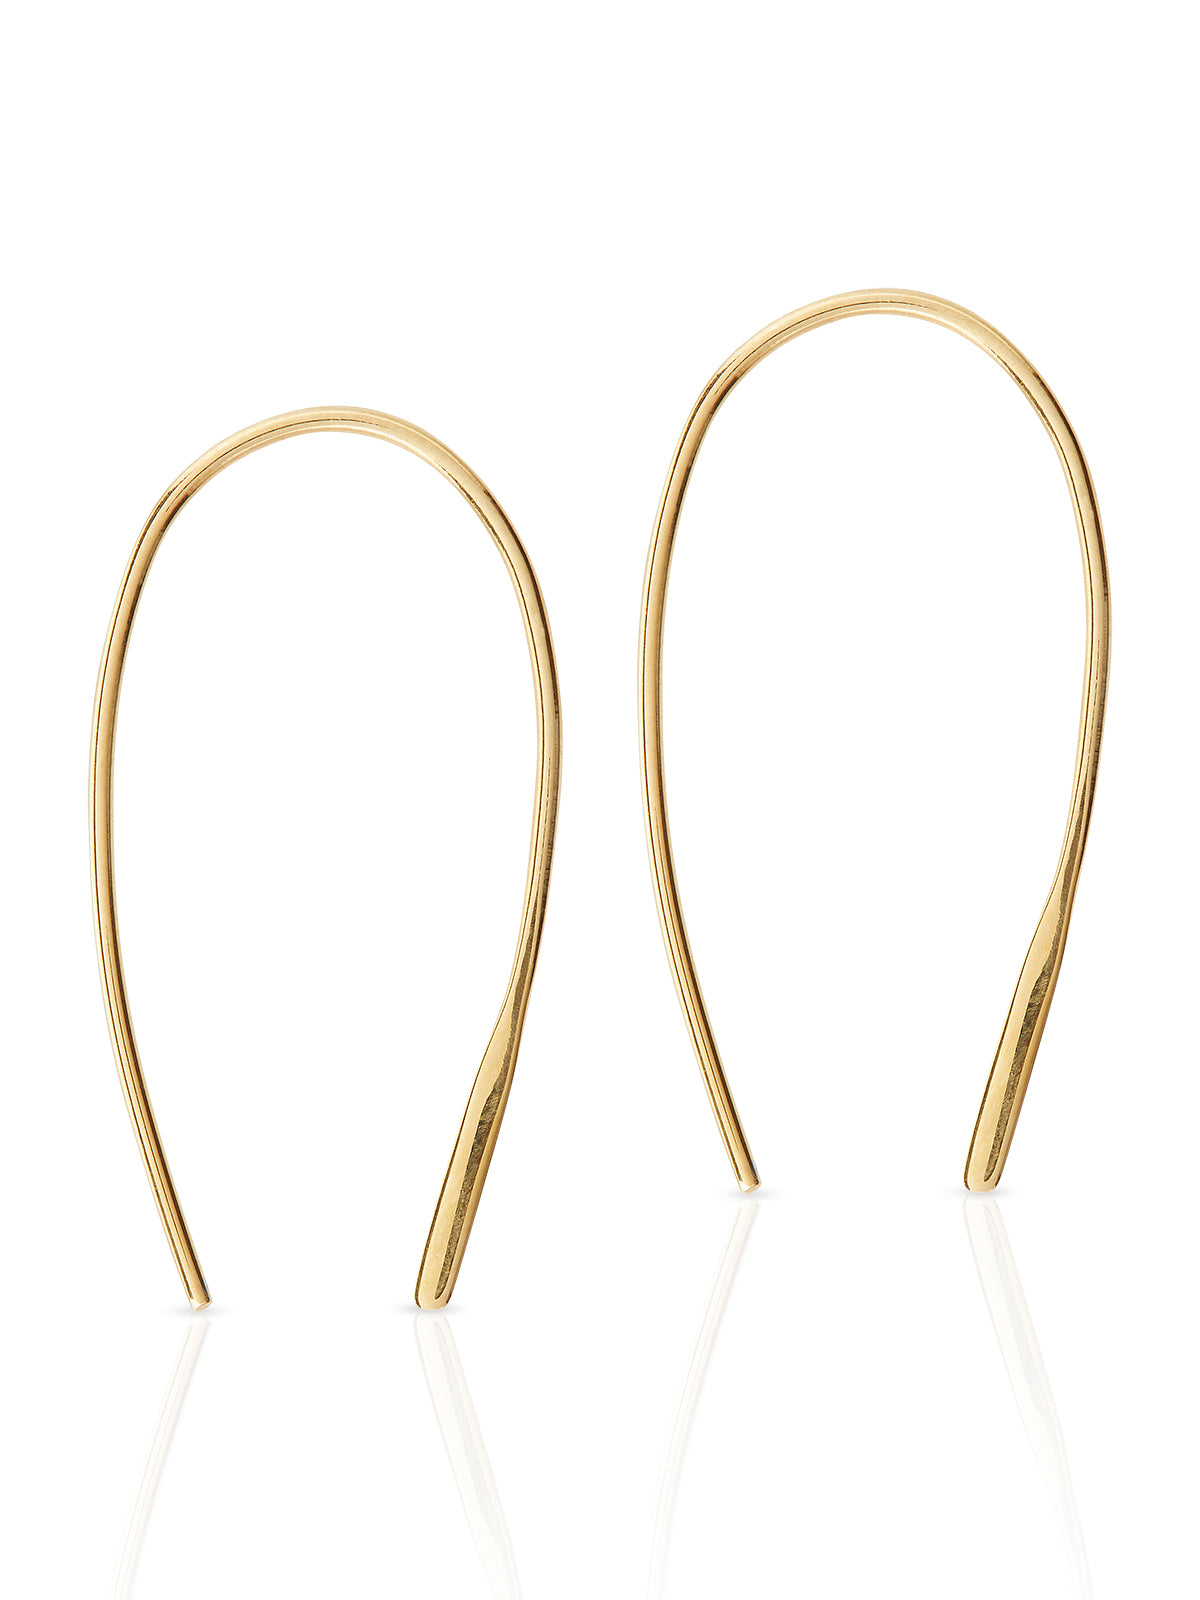 DEBORAH EARRING BRUSHED GOLD